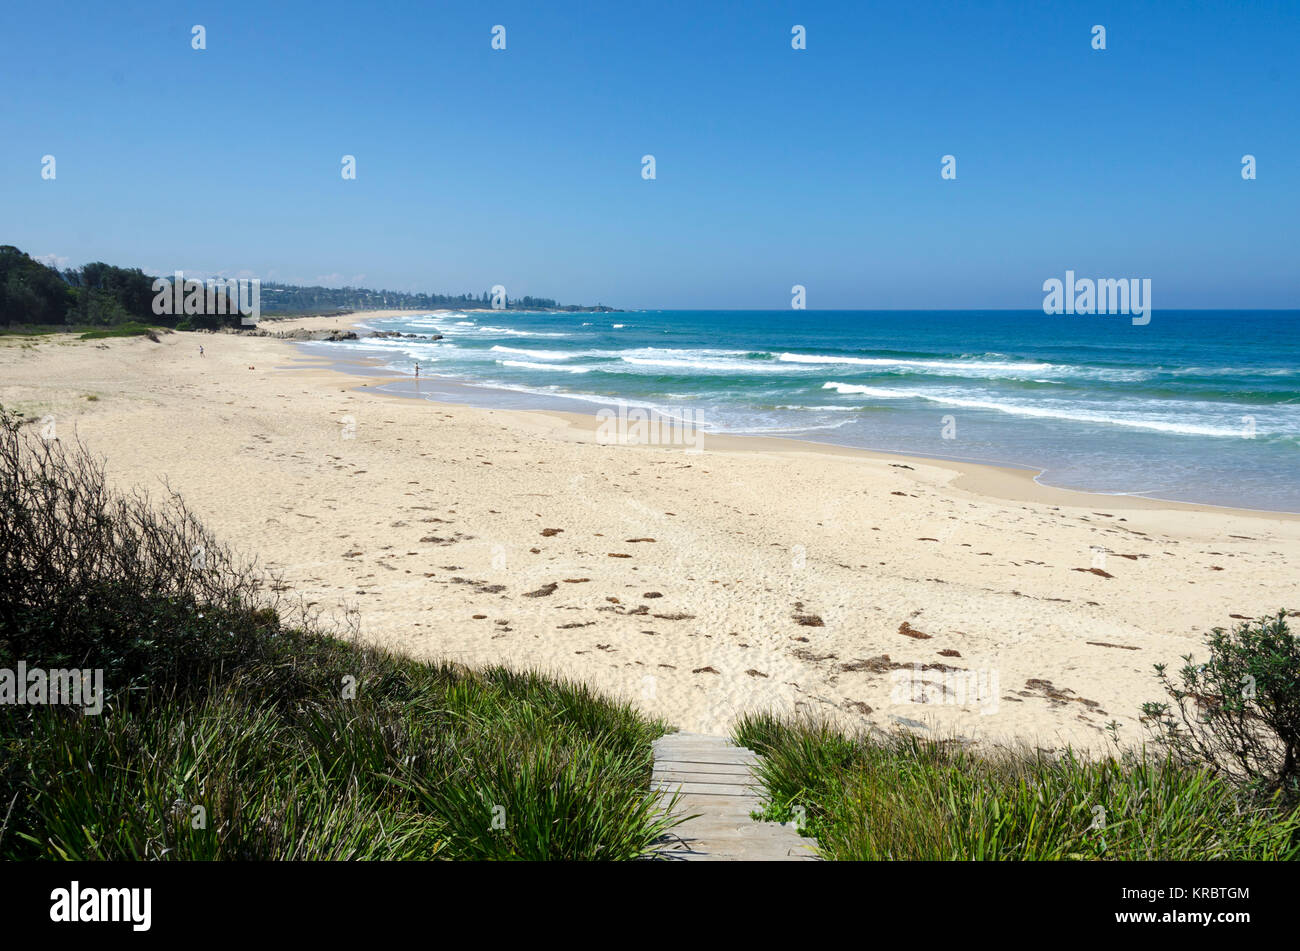 Blackfellows Beach, Potato Point, New South Wales, Australia - Stock Image